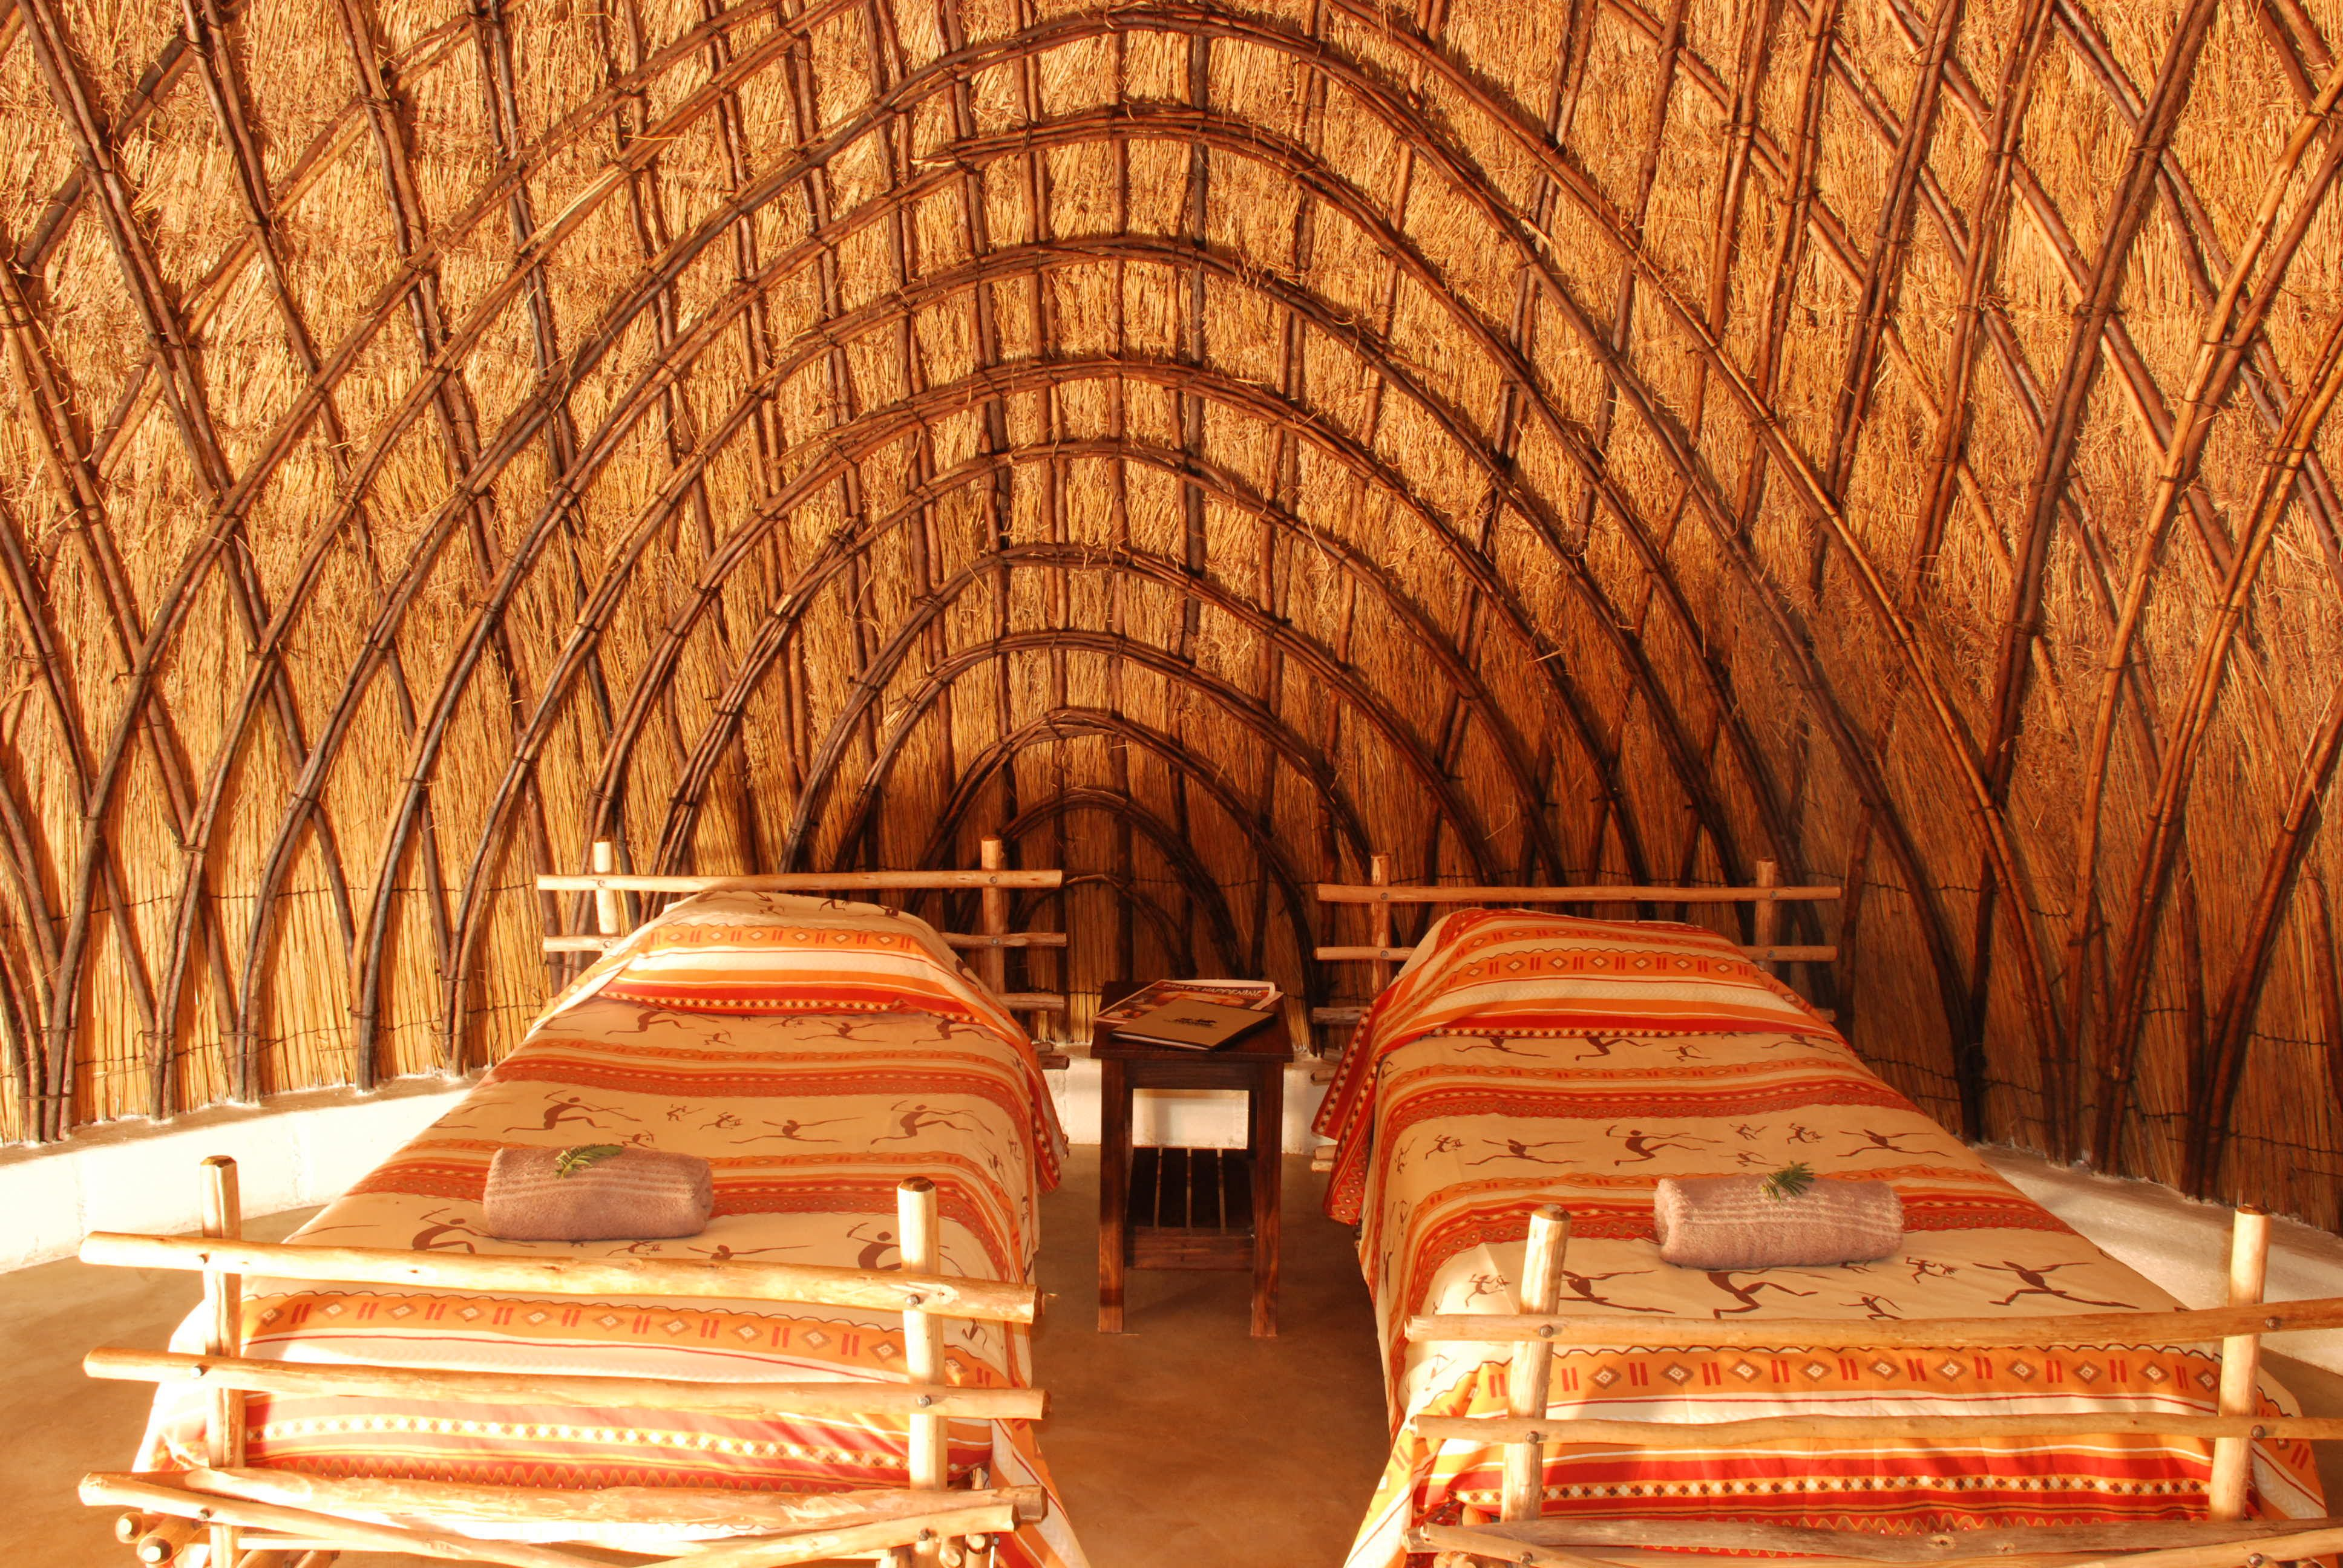 Swaziland inside of a beehive hut mlbh4 African